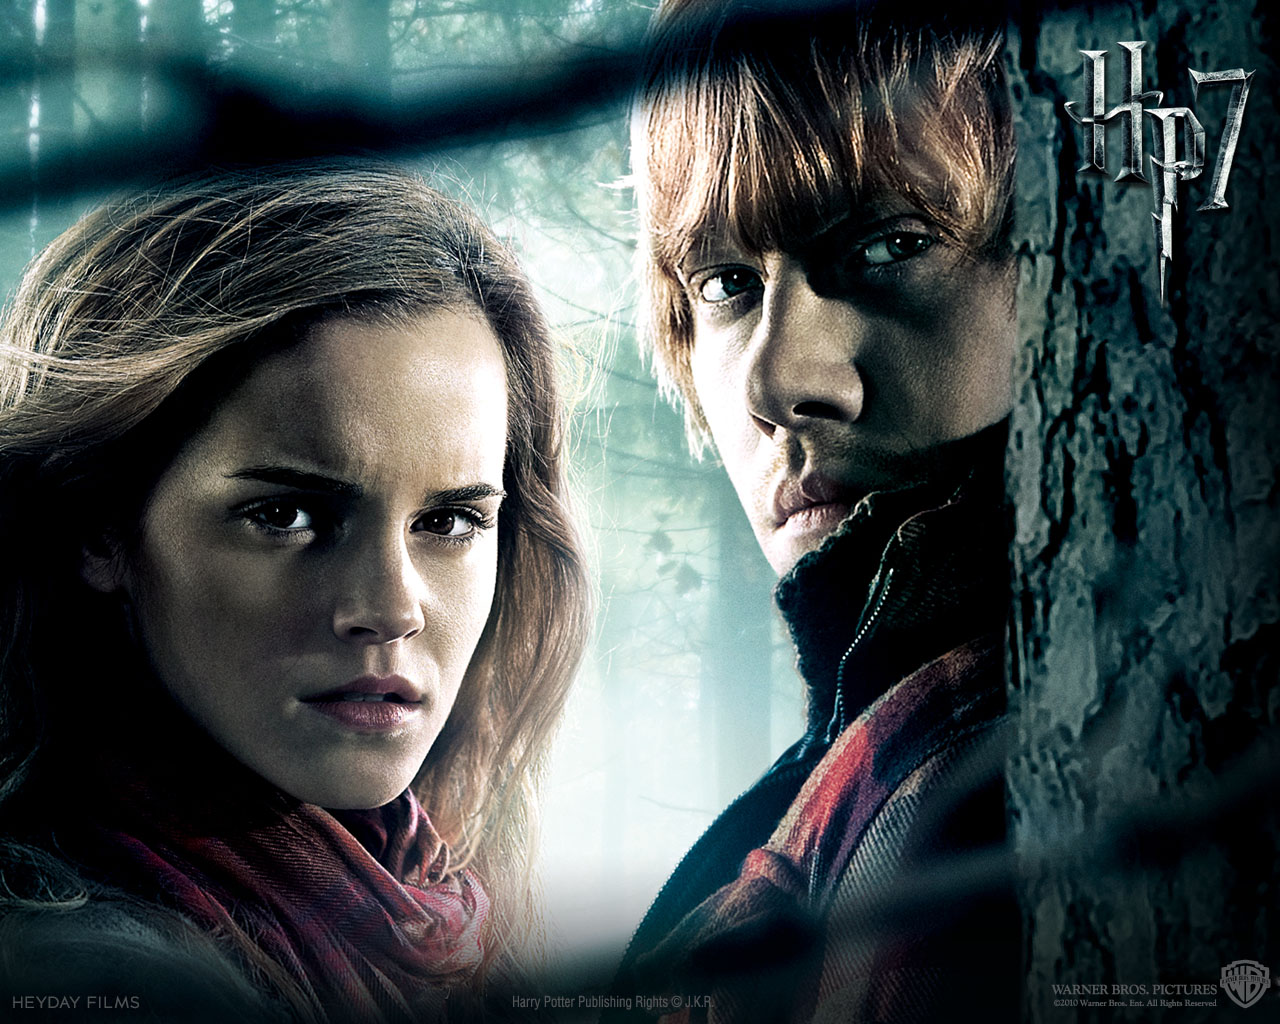 HARRY POTTER & THE DEATHLY HALLOWS PART II MOVIE - Review ...